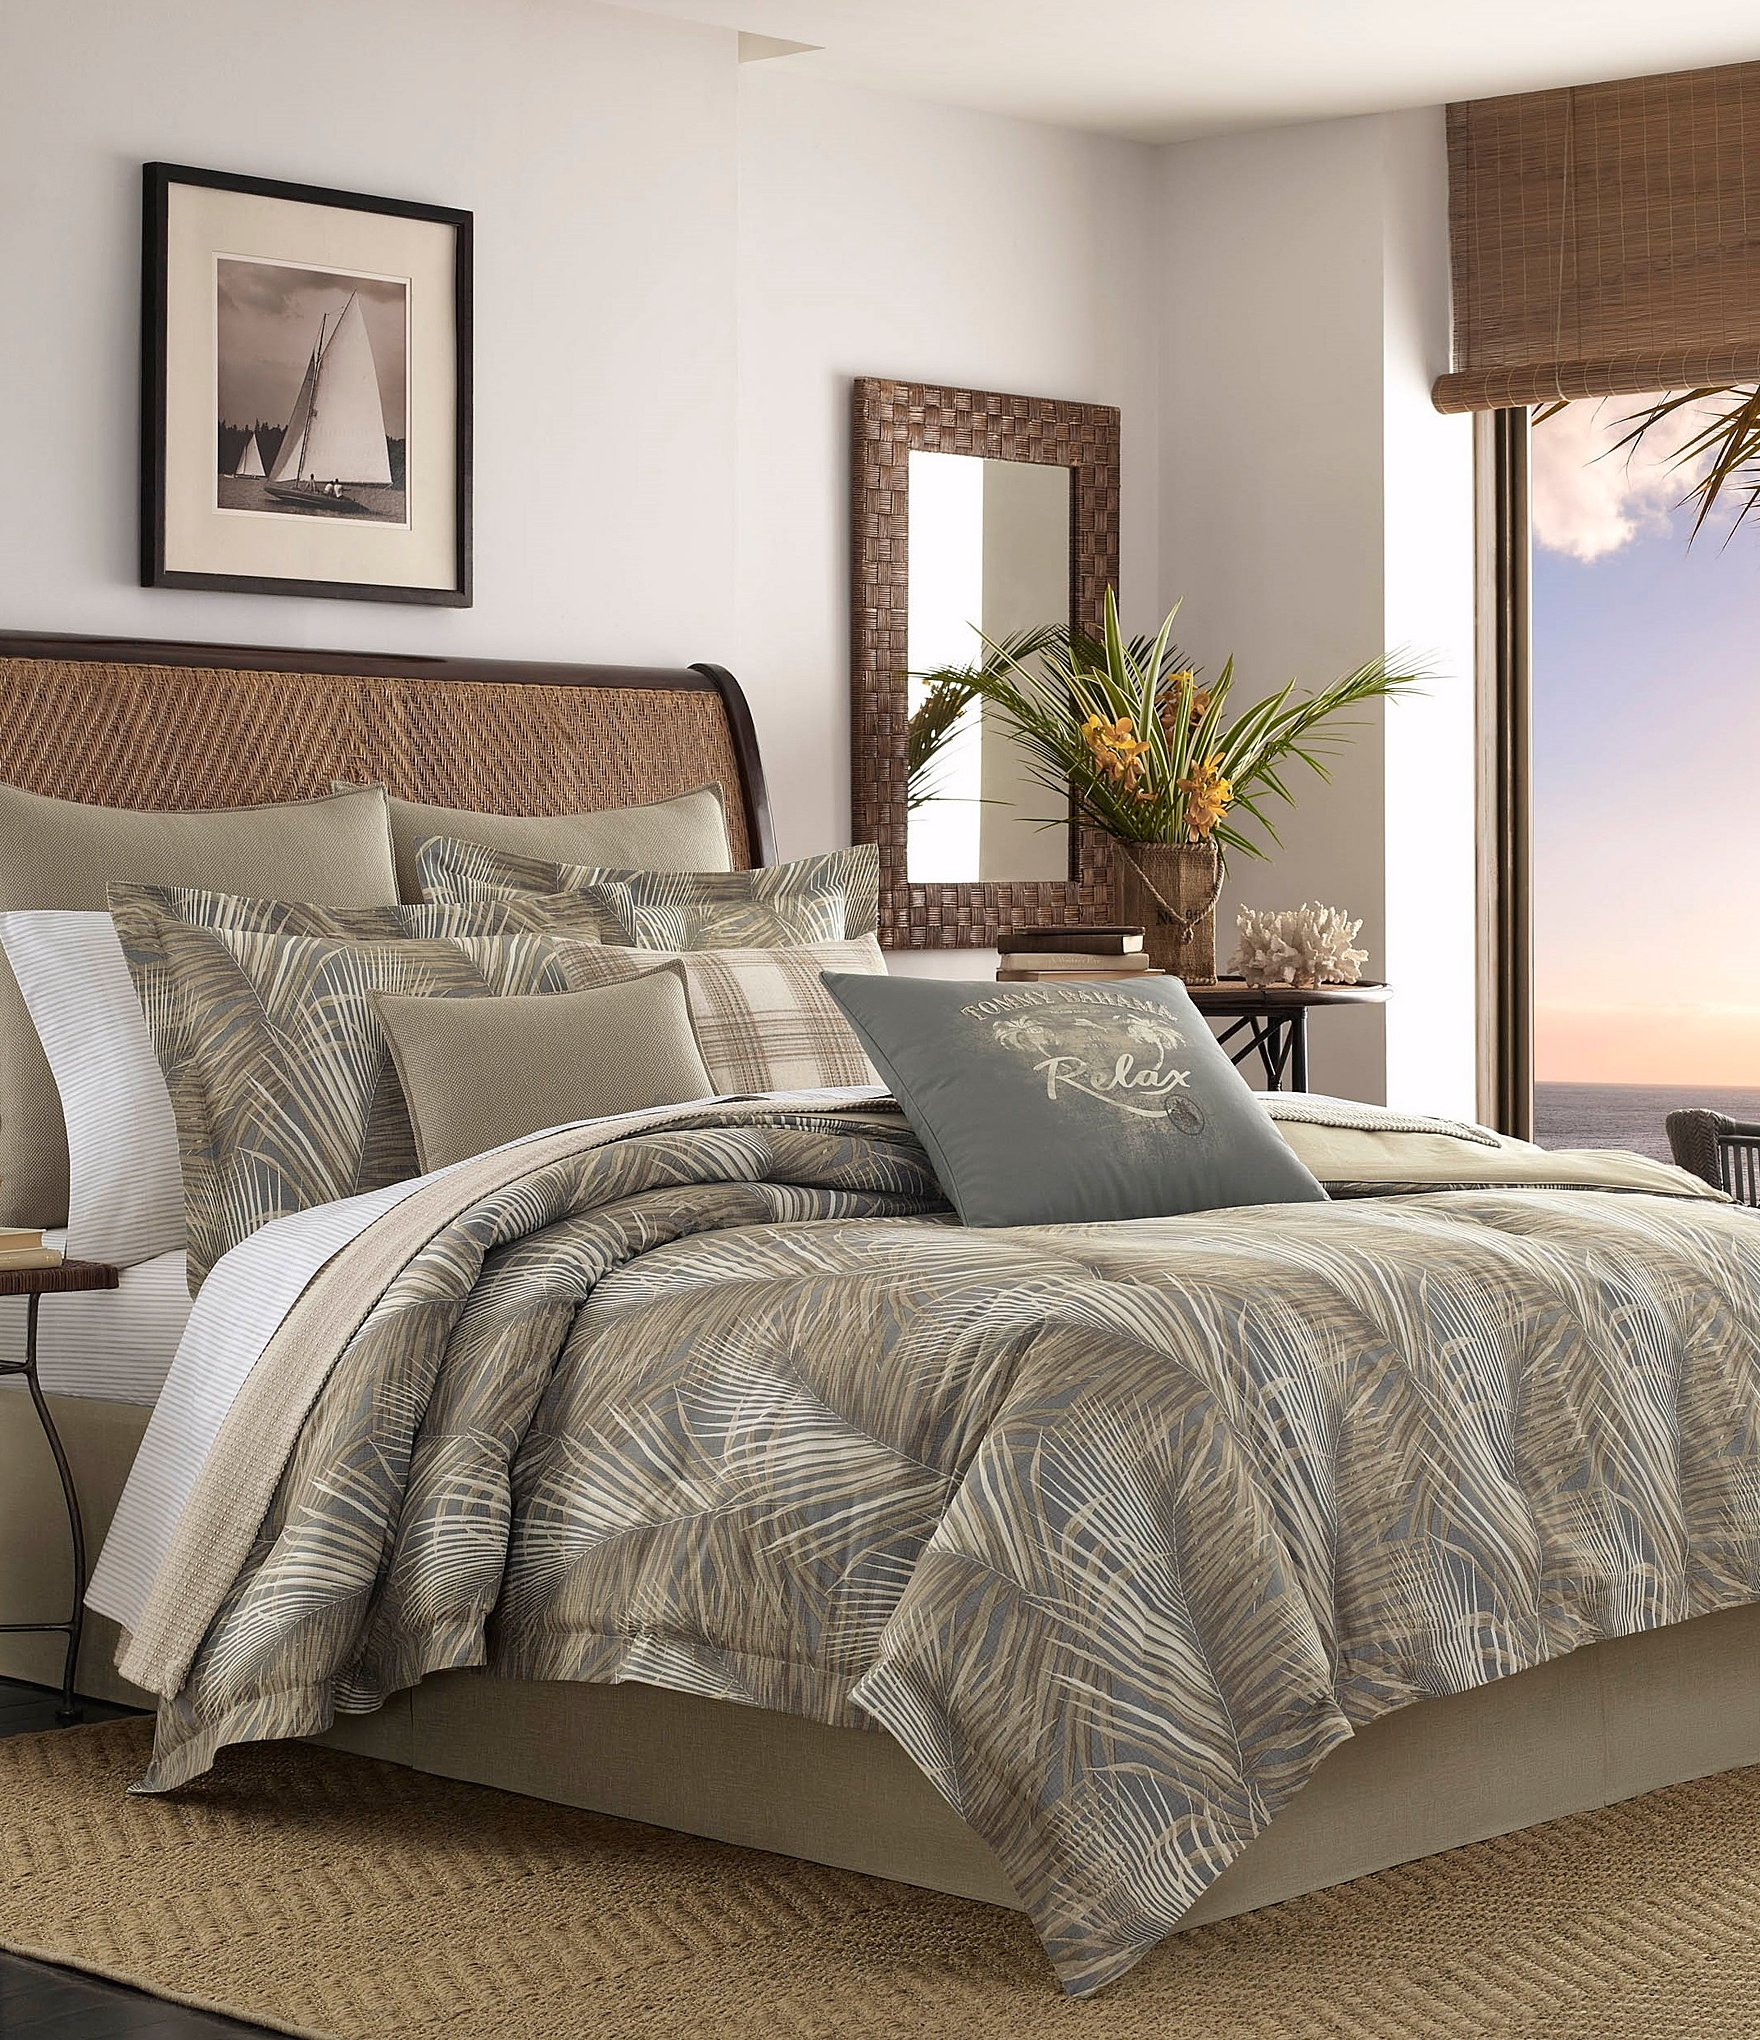 bedspread dillards bedding decoration comforter class sets set touch bedspreads of